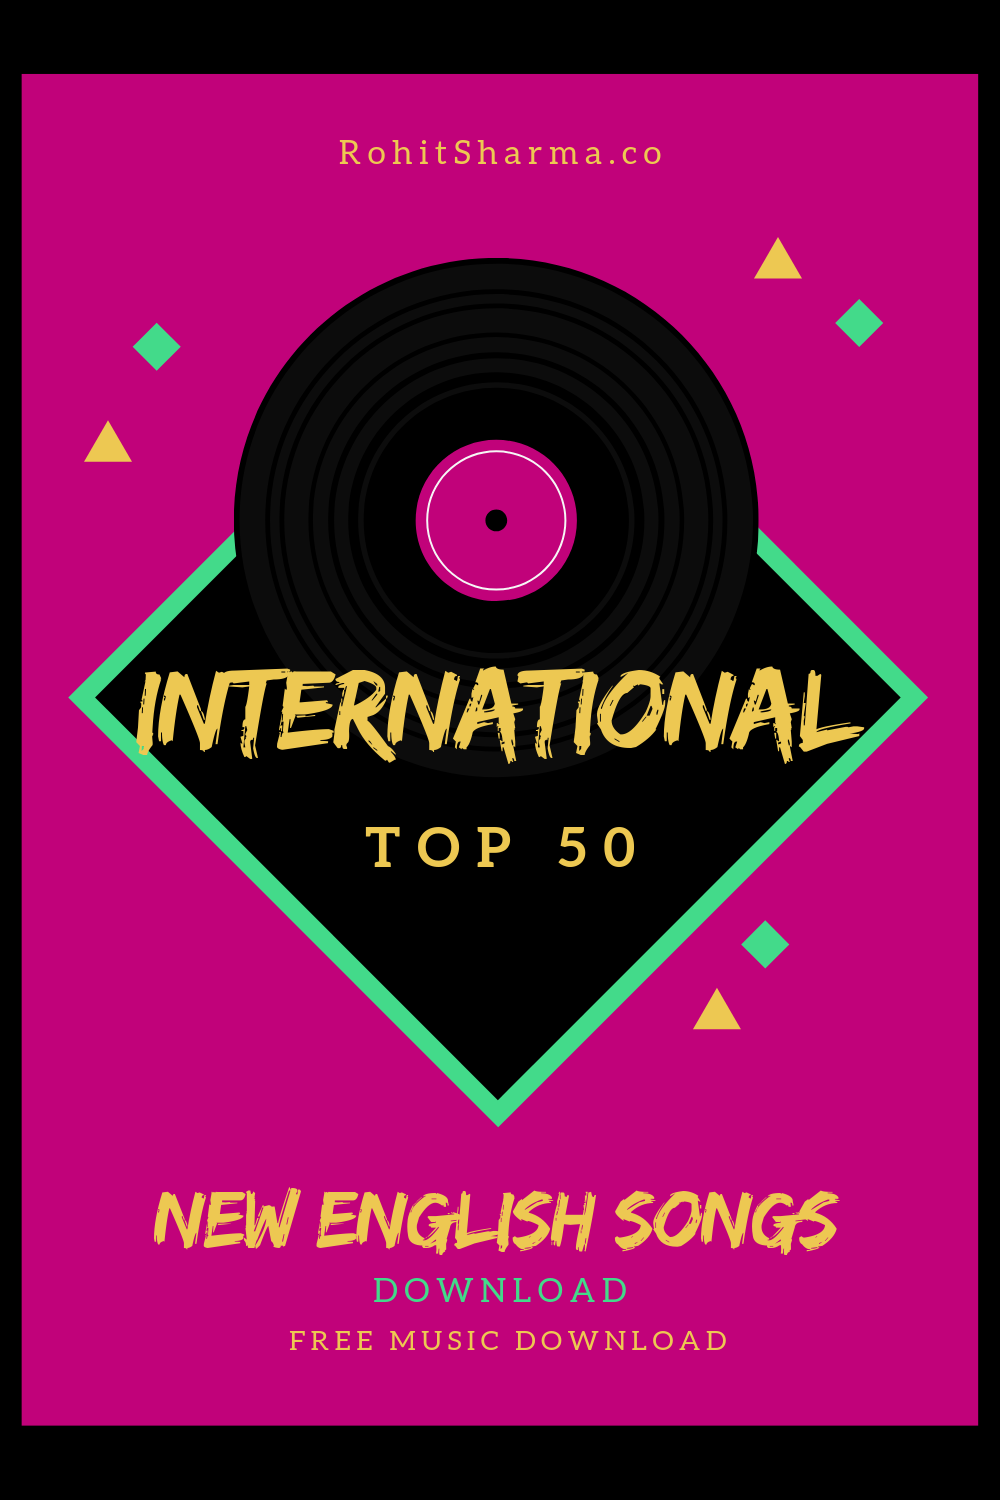 International Top 50 (With images) Songs, Top 50 songs